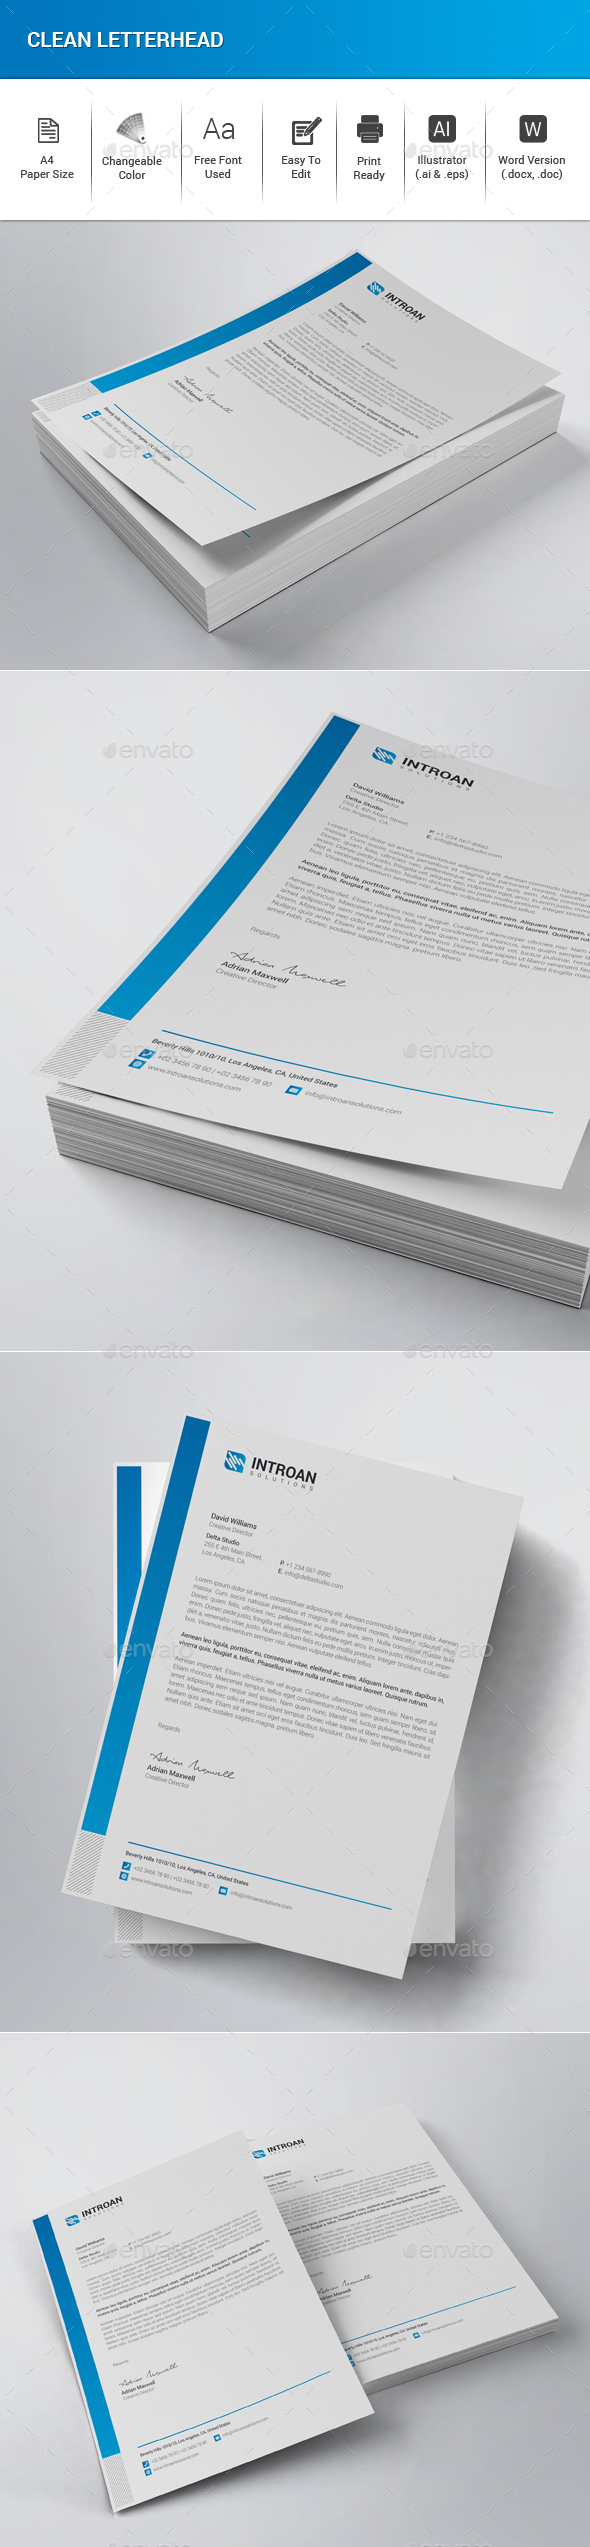 Clean Letterhead - Stationery Print Templates